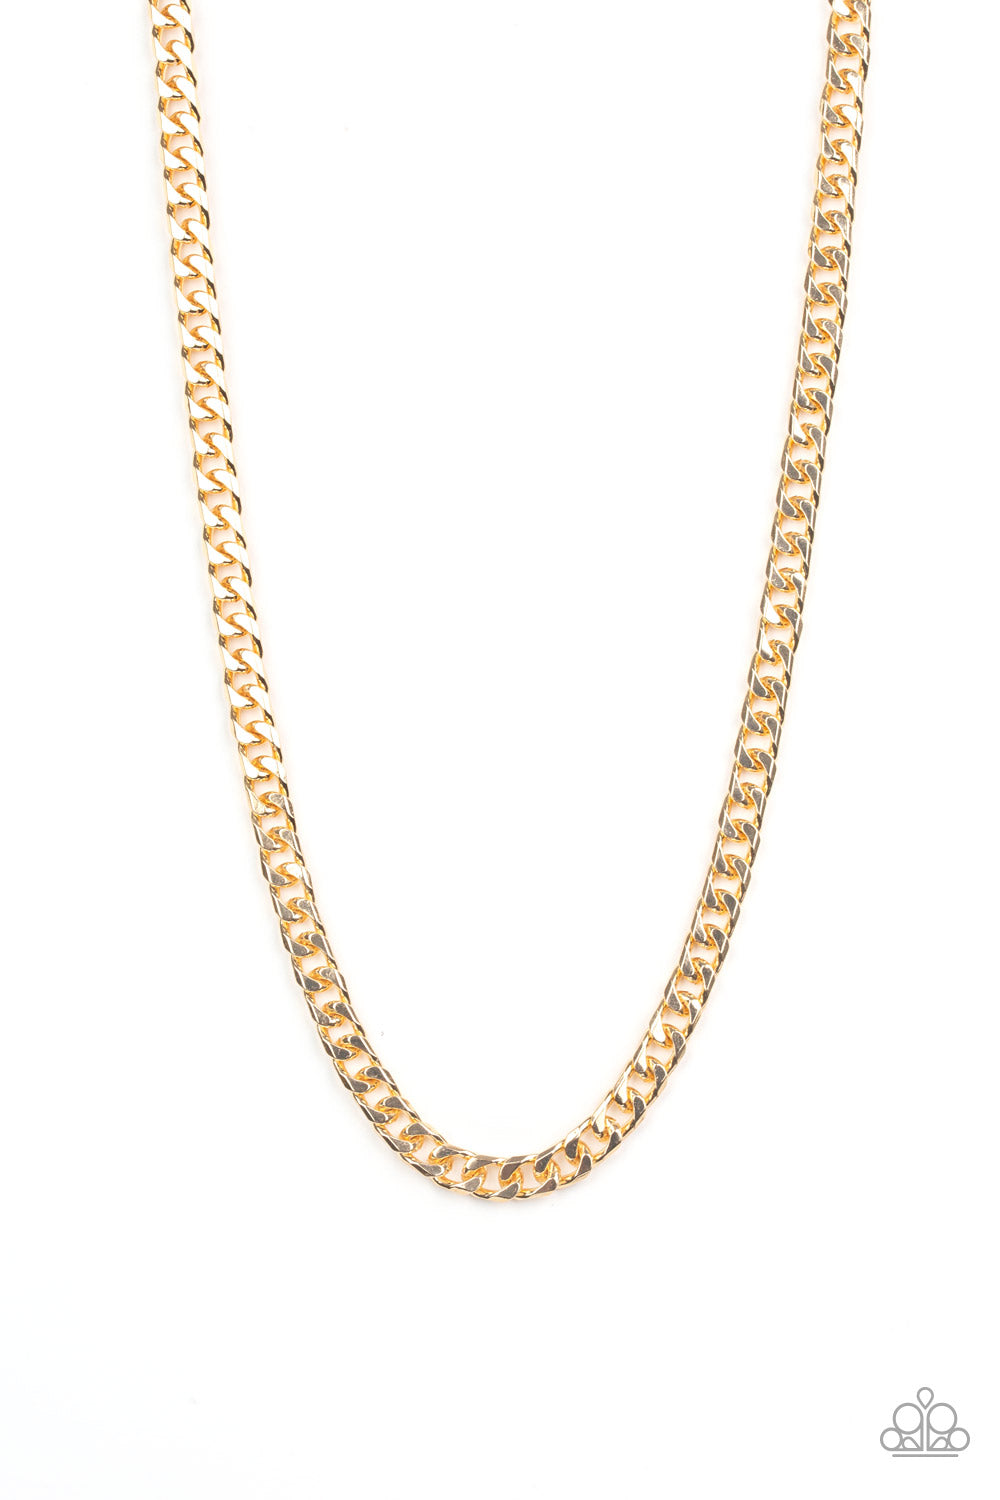 The Game CHAIN-ger - Gold Necklace